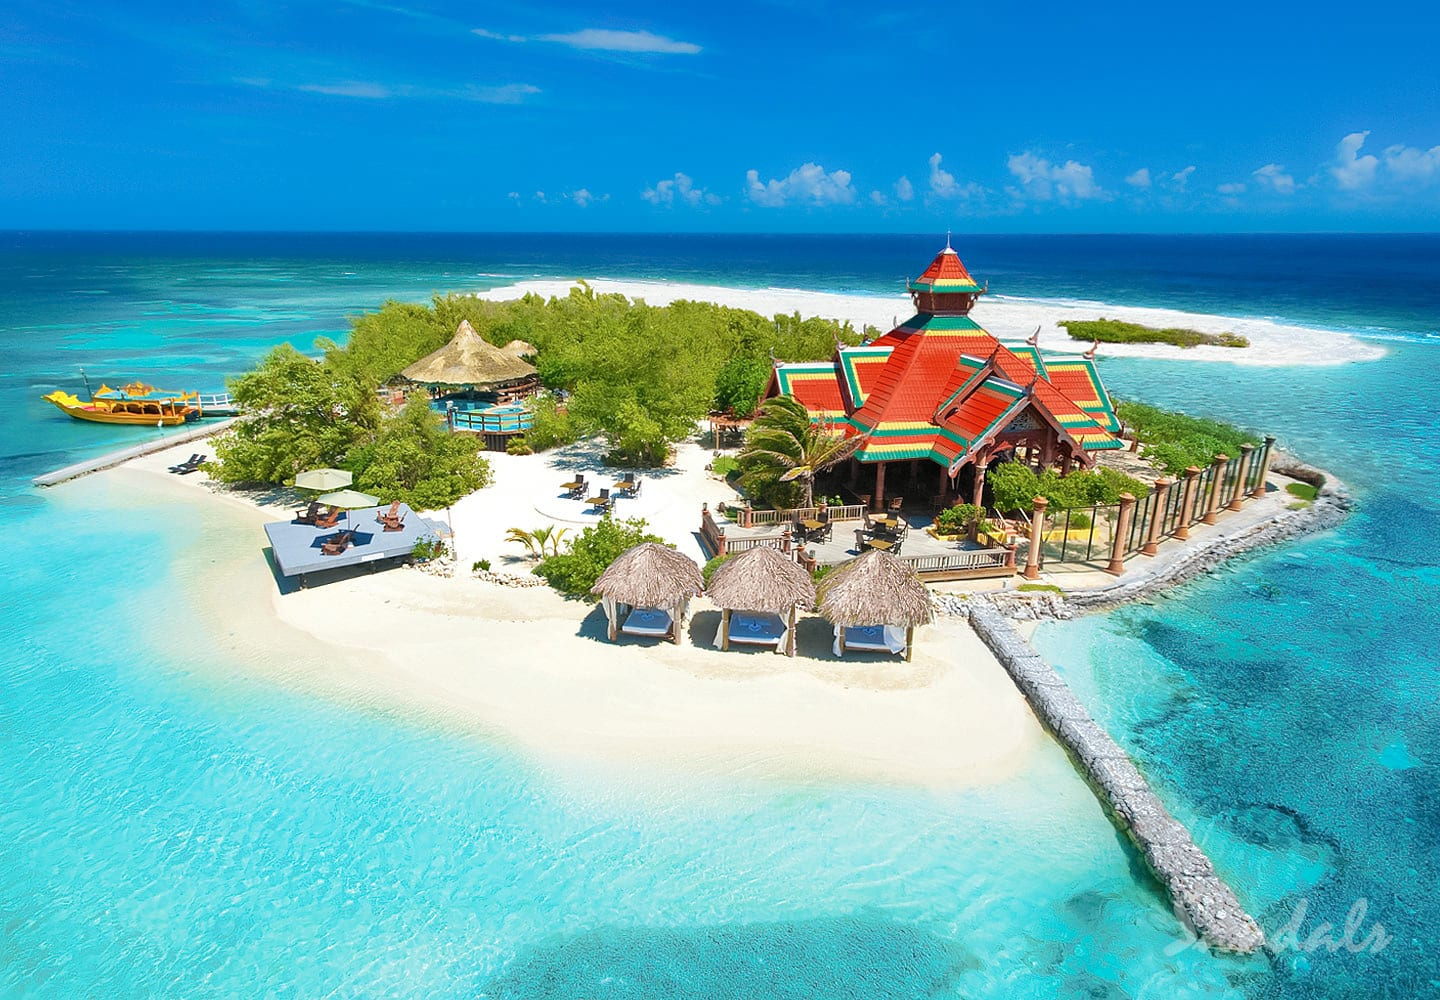 island view of the Sandals Royal Caribbean luxury resort and private island